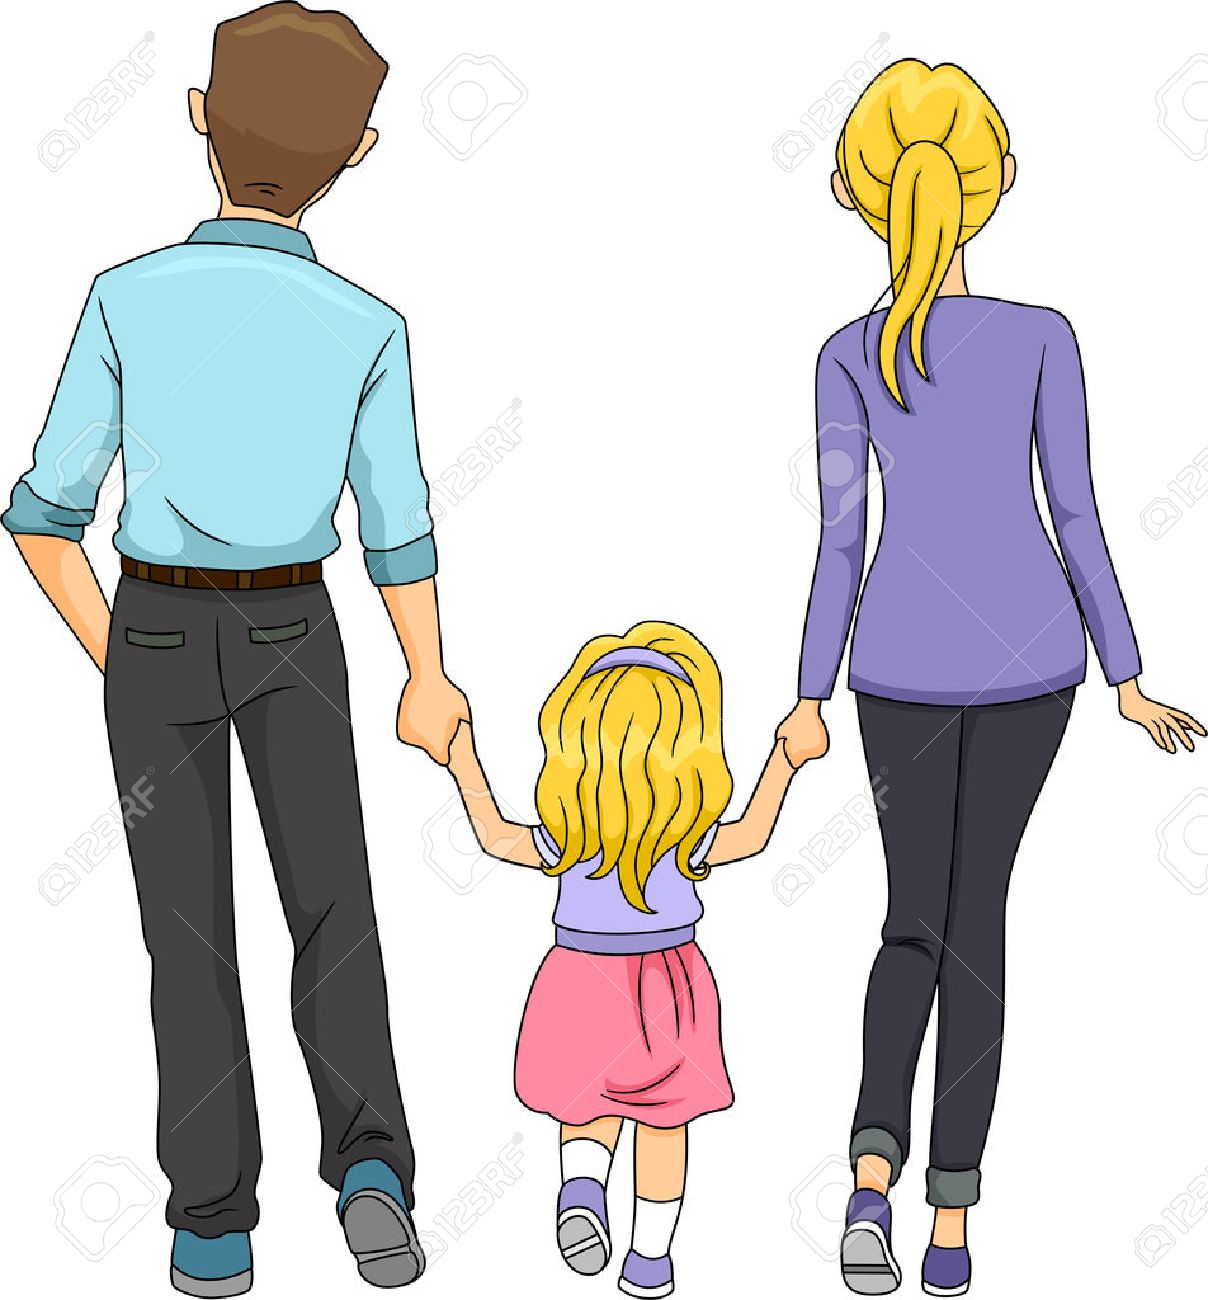 1208x1300 Back View Illustration Of A Family Walking Together Royalty Free